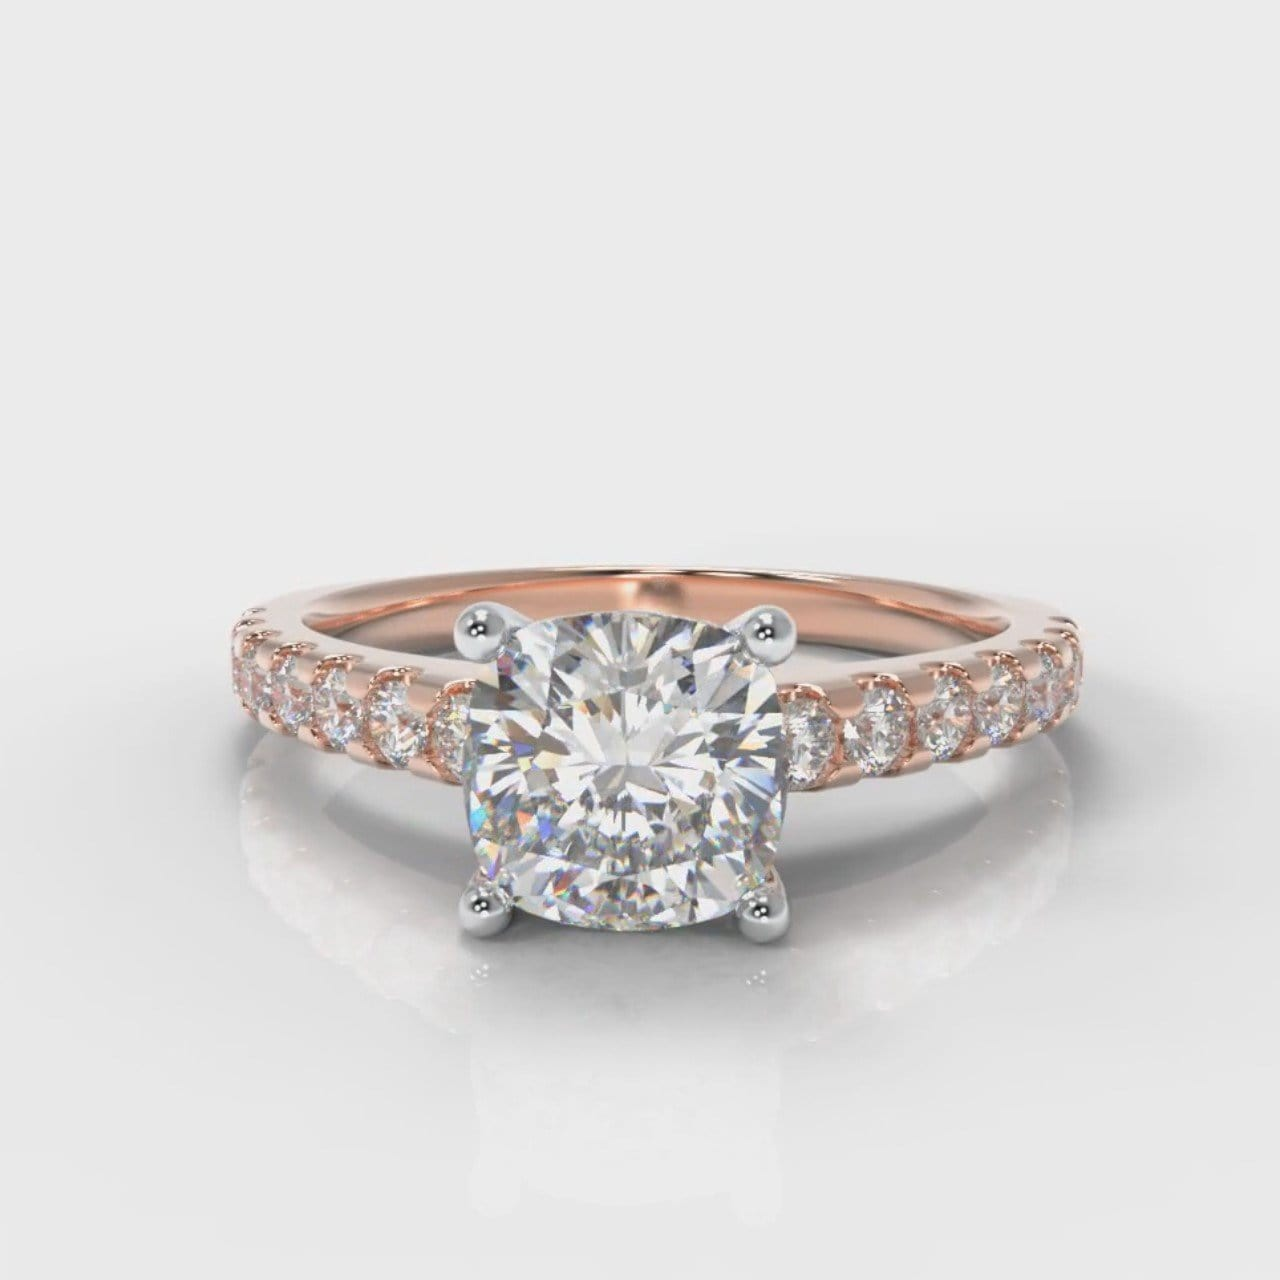 Carrée Micropavé Cushion Cut Diamond Engagement Ring - Rose Gold